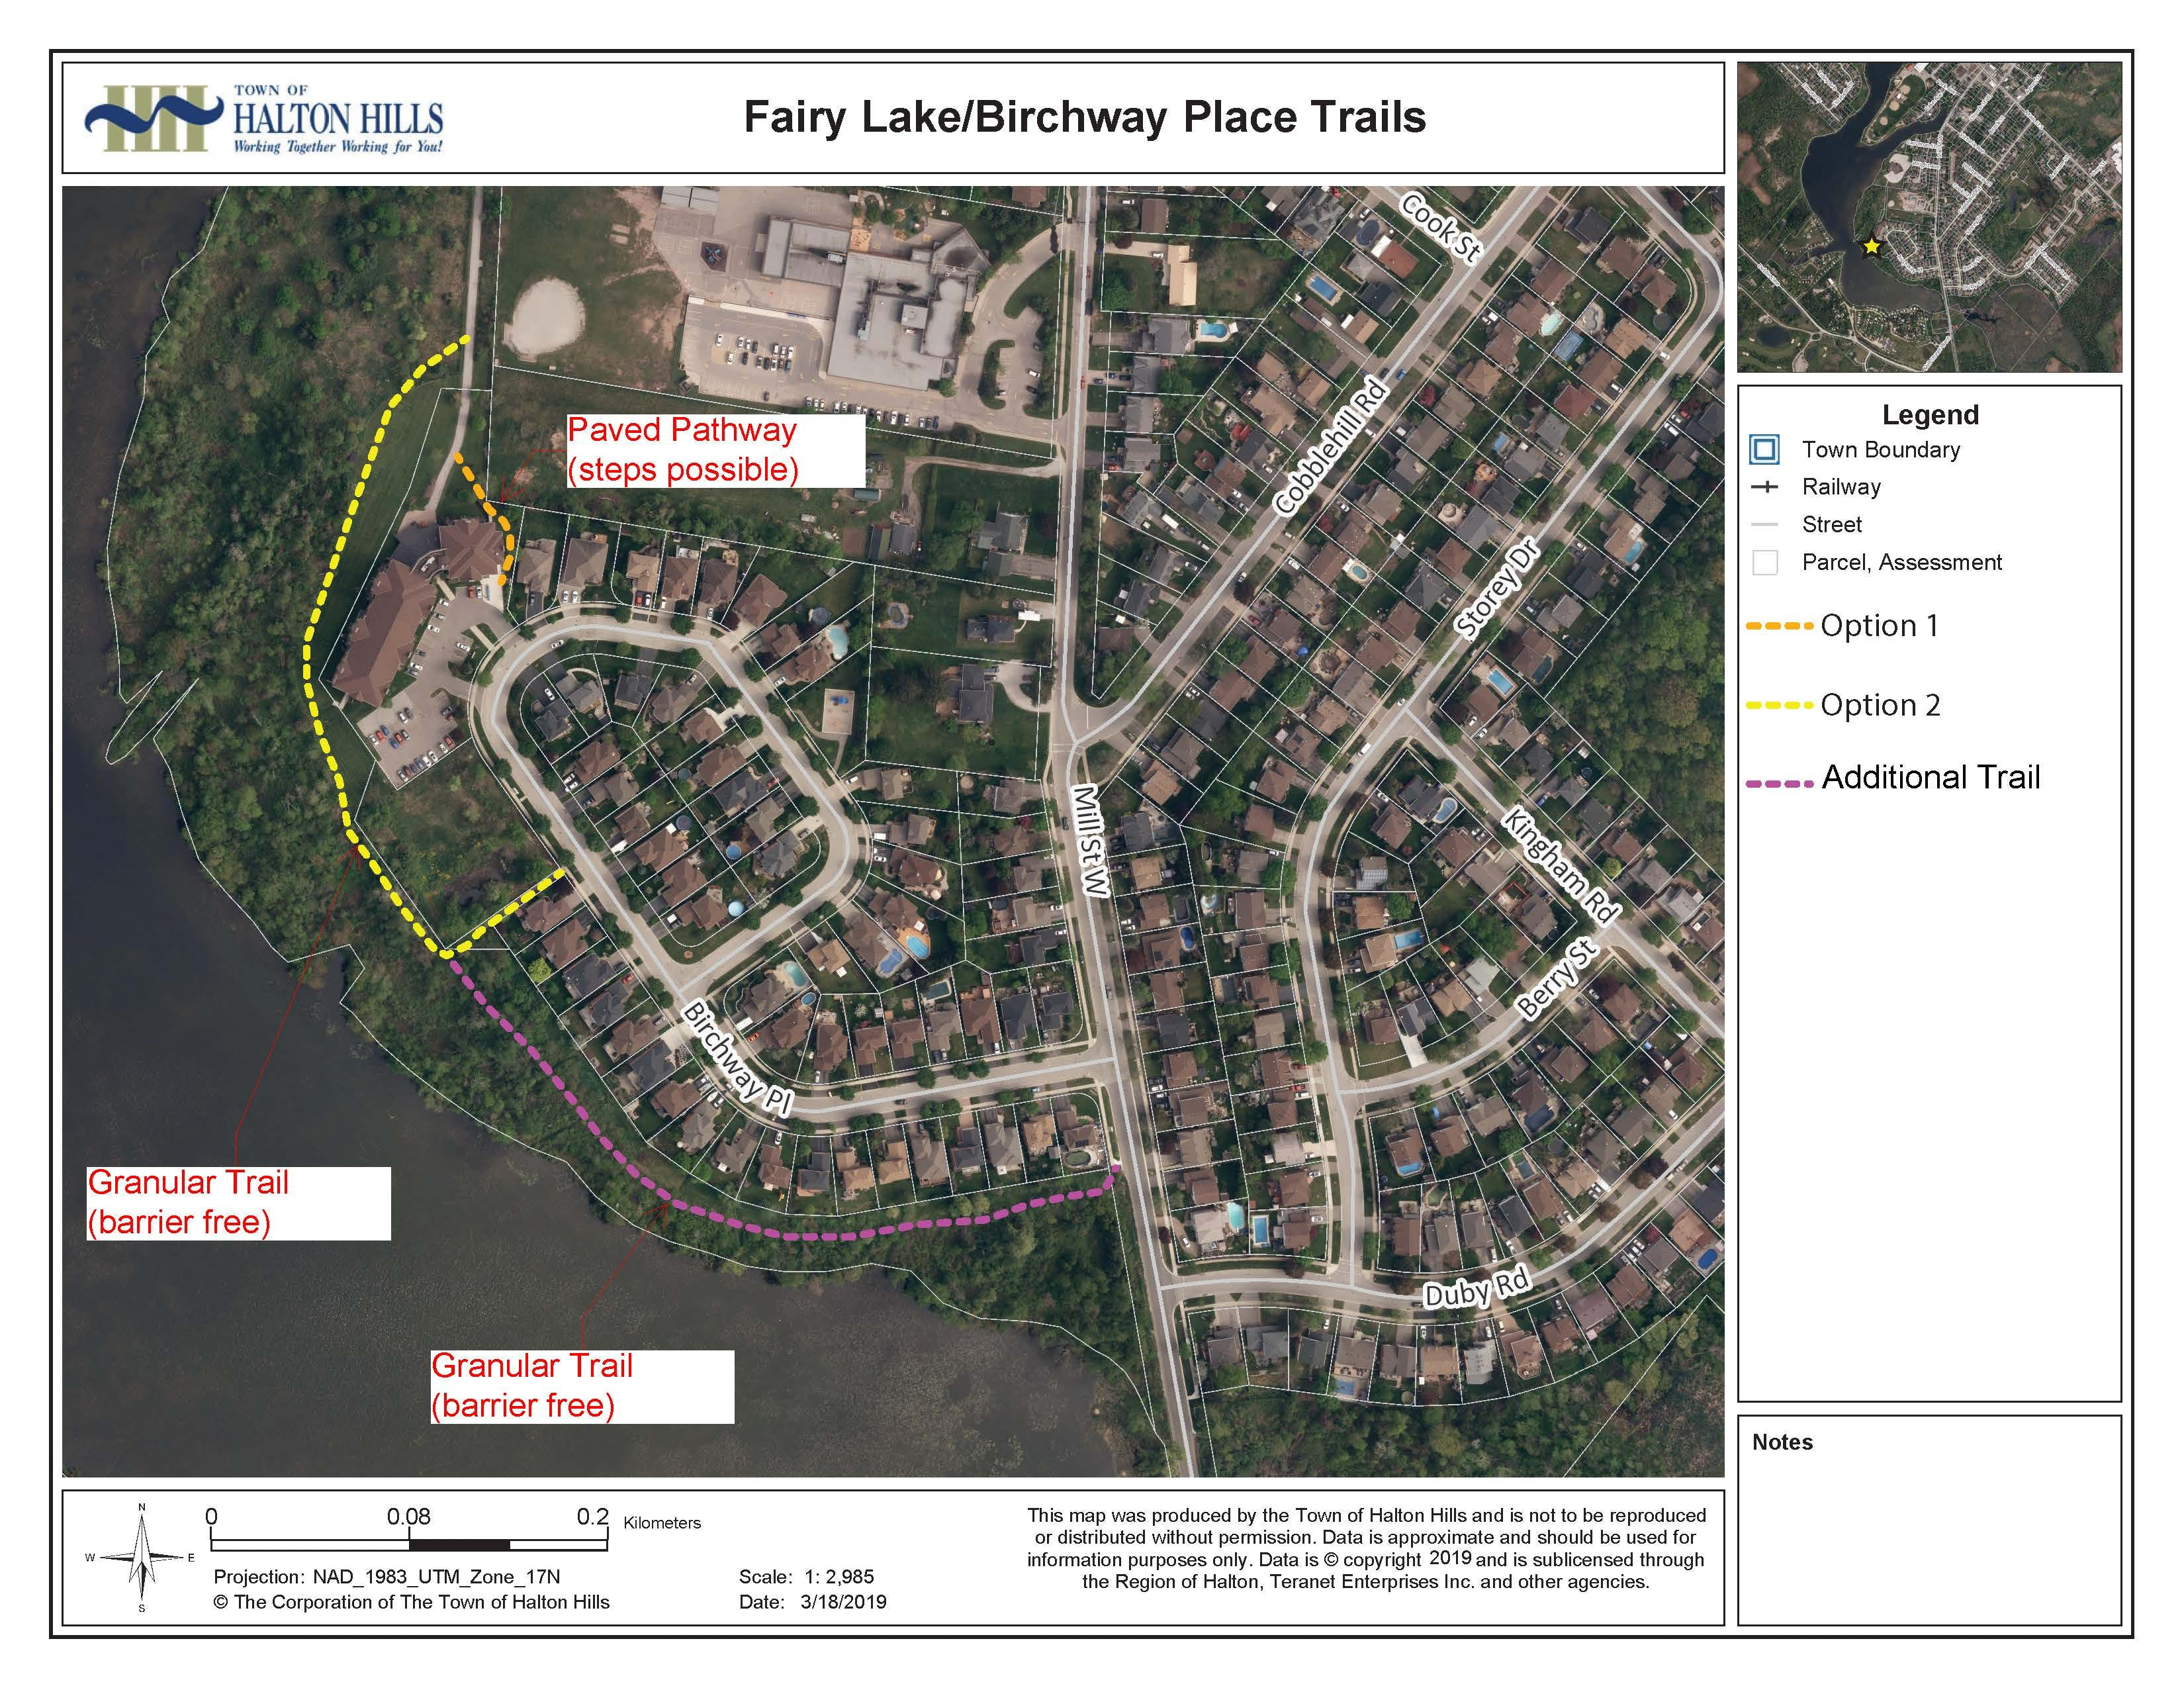 2019 Birchway Place Trails